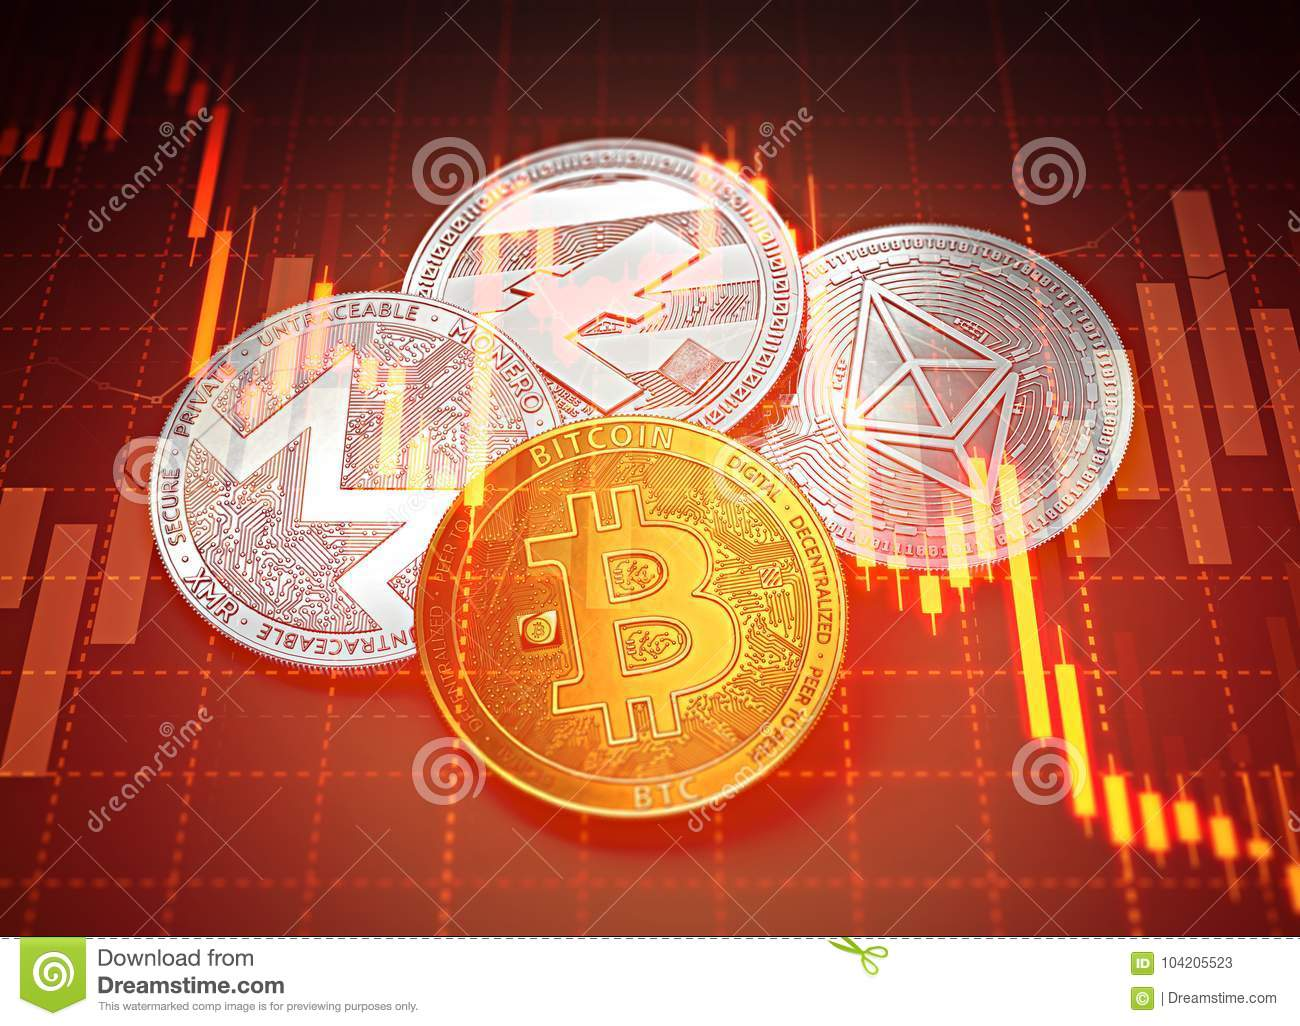 Cryptocurrencies success graphs with charts declining. Cryptocurrencies decline concept.